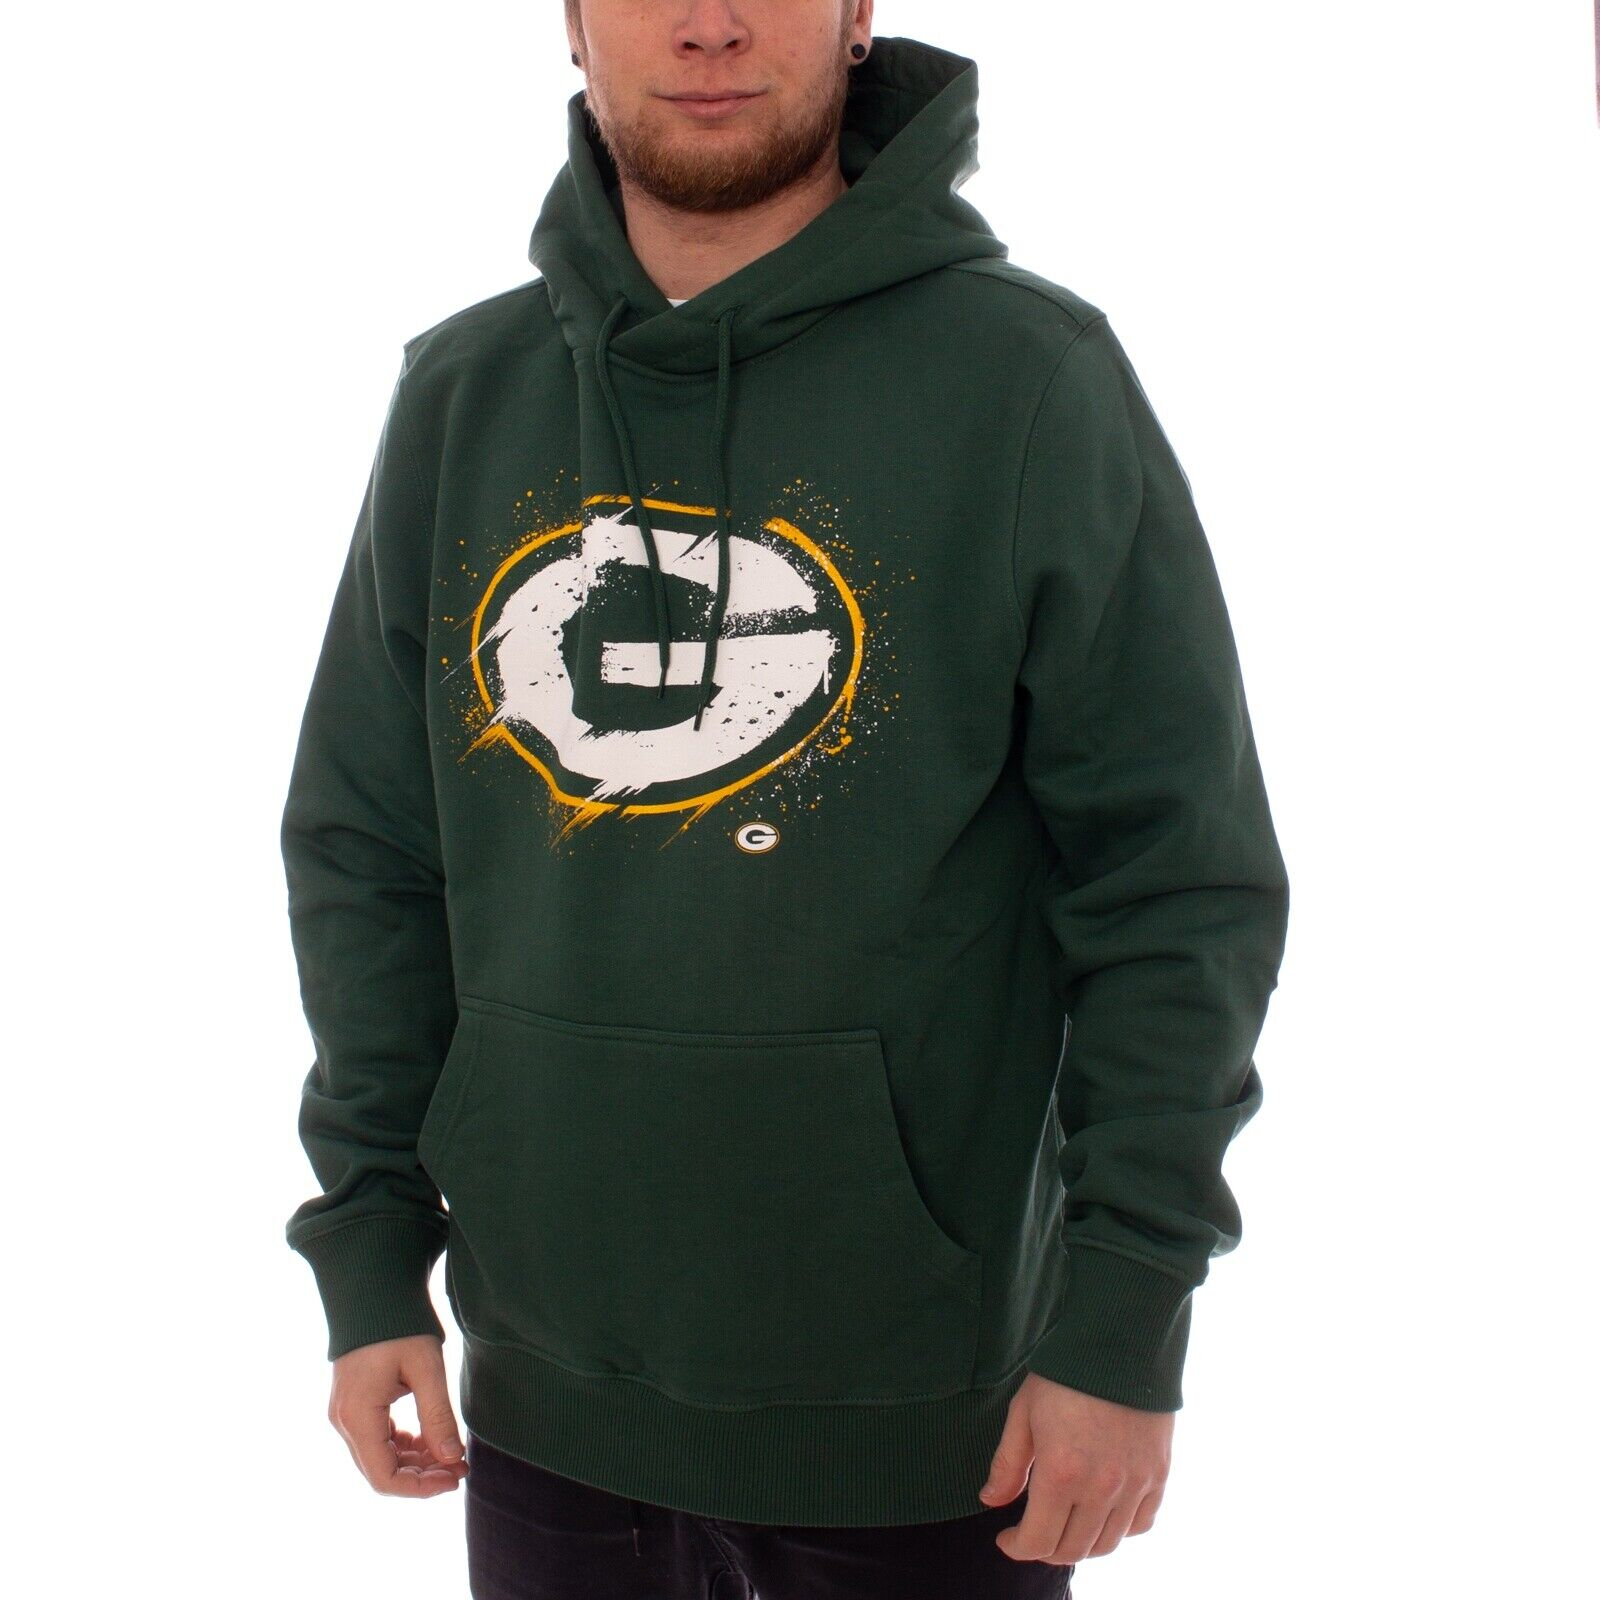 Fanatics NFL Football Grün Bay Packers Hoodie Herren Sweater grün 35117